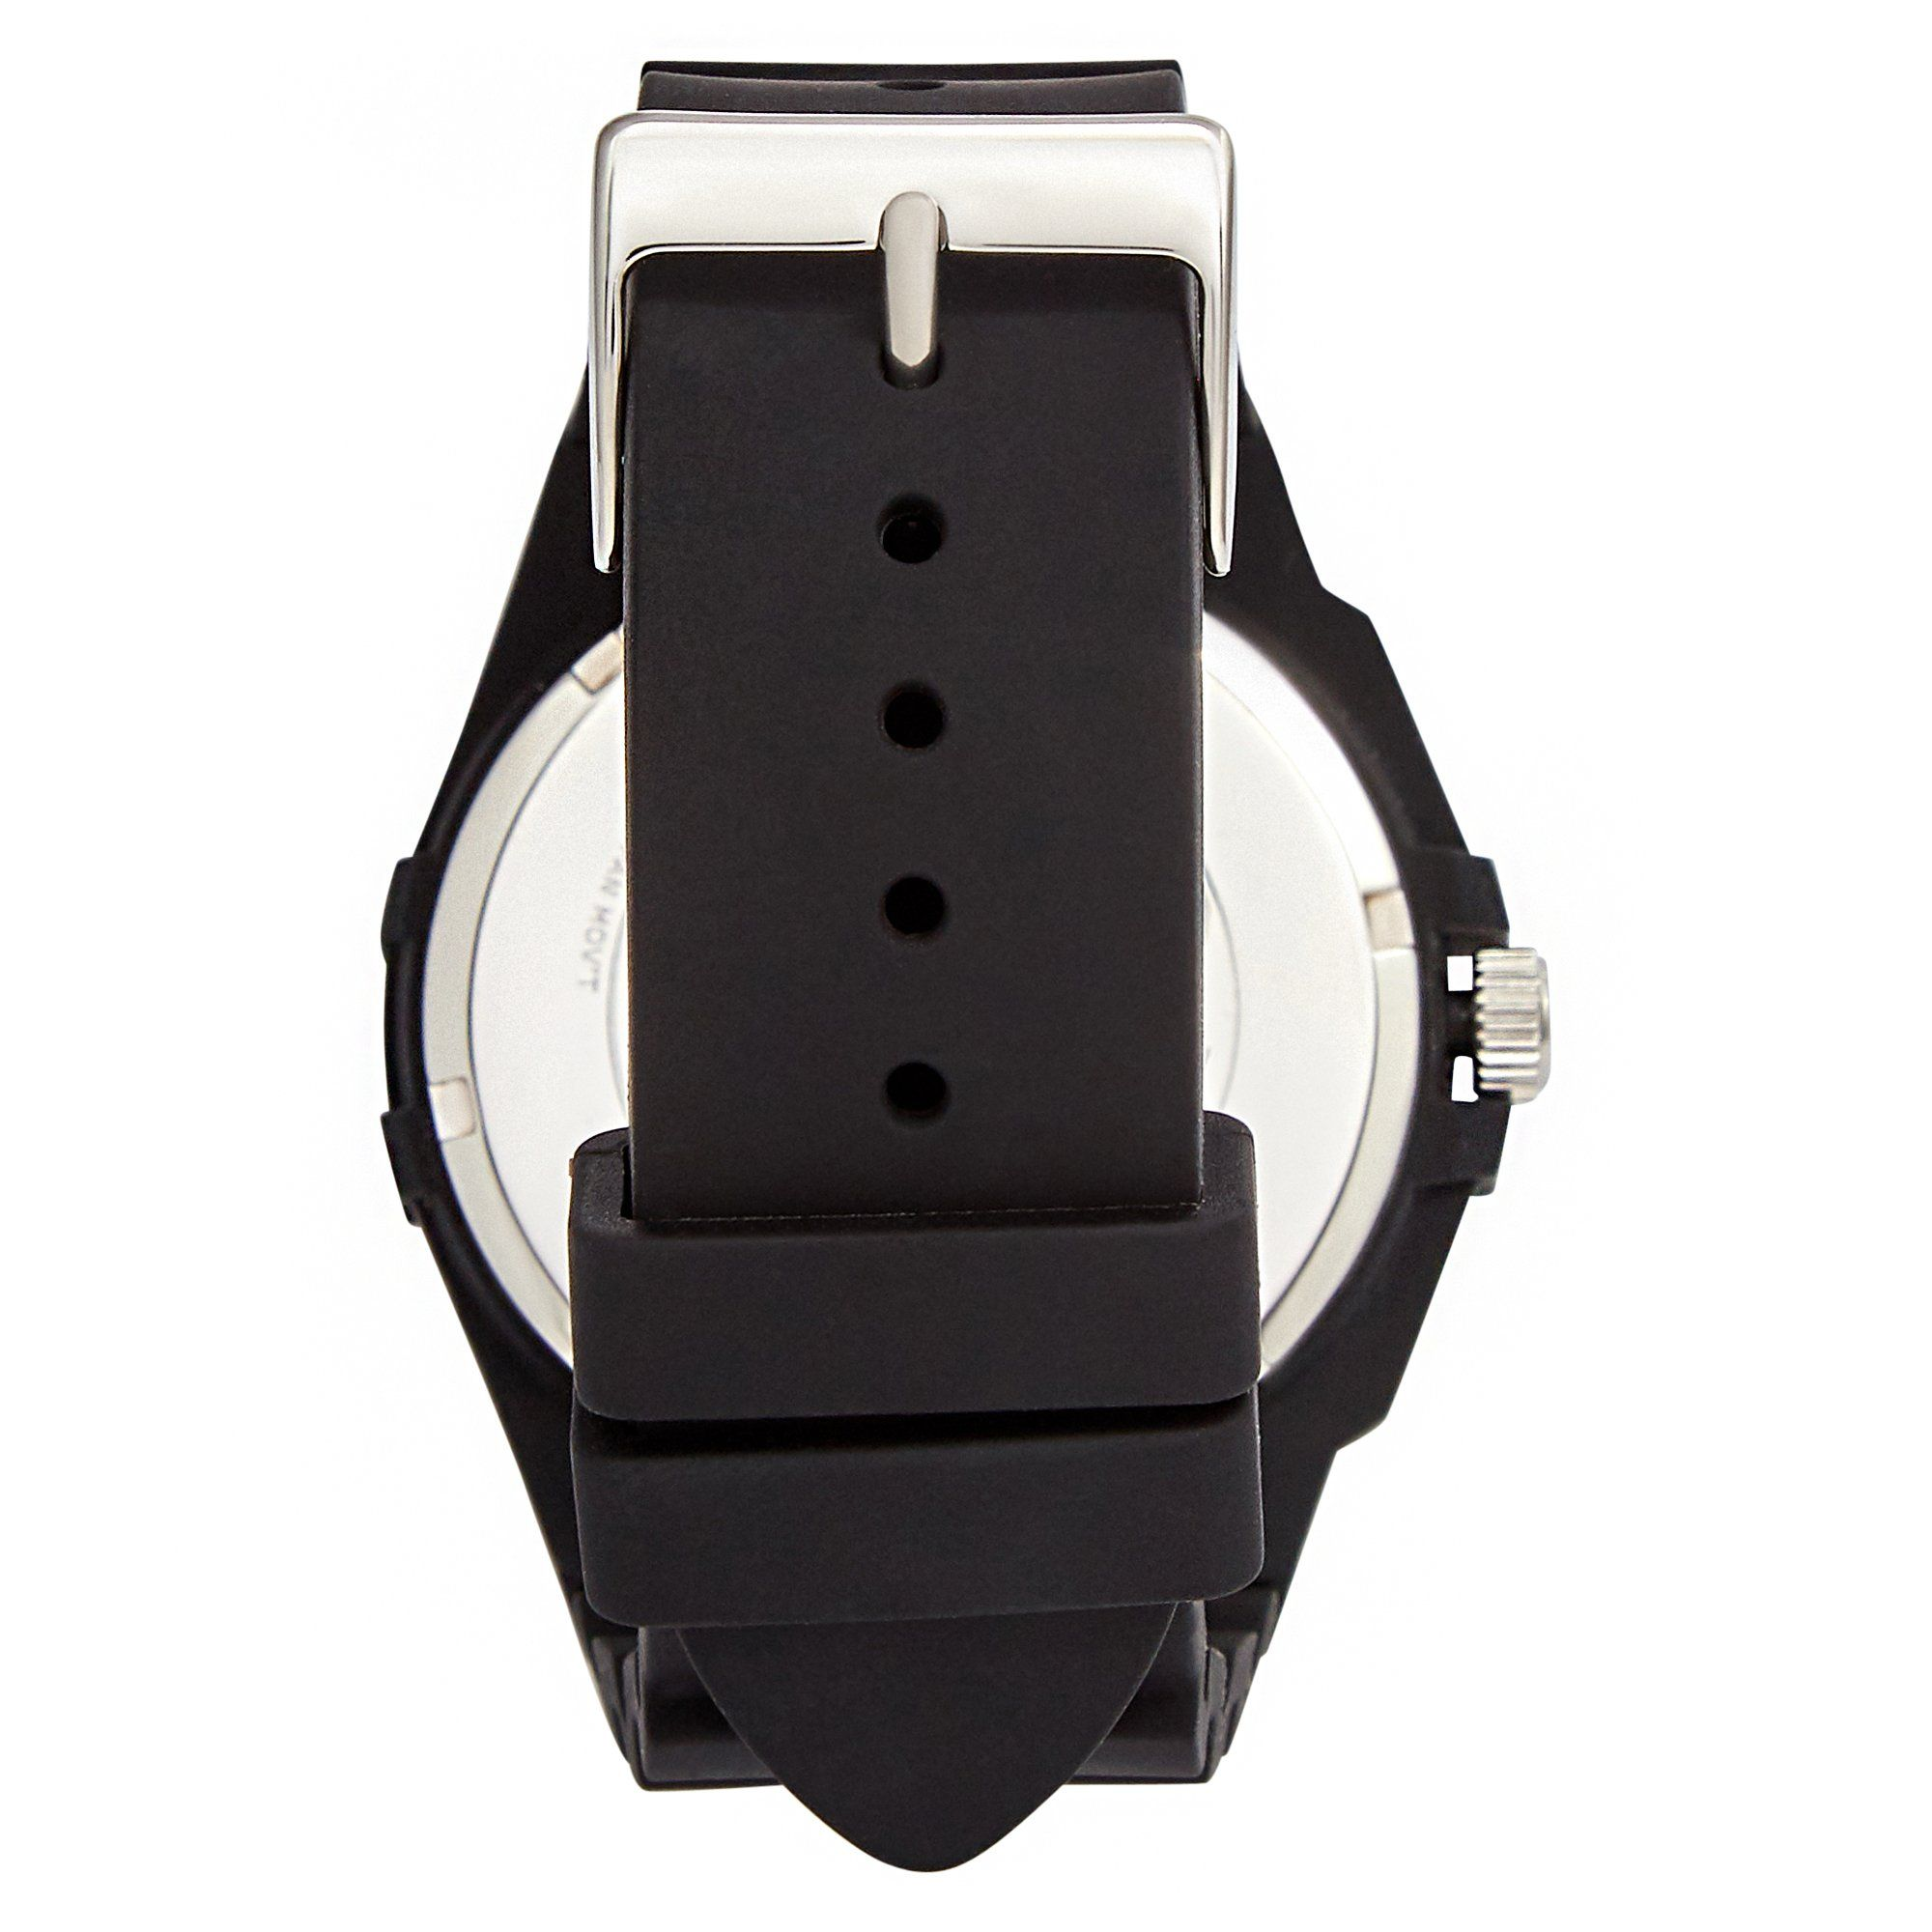 Guess Spinner Blk Blk Silc Watches Isbister & Co Wholesale